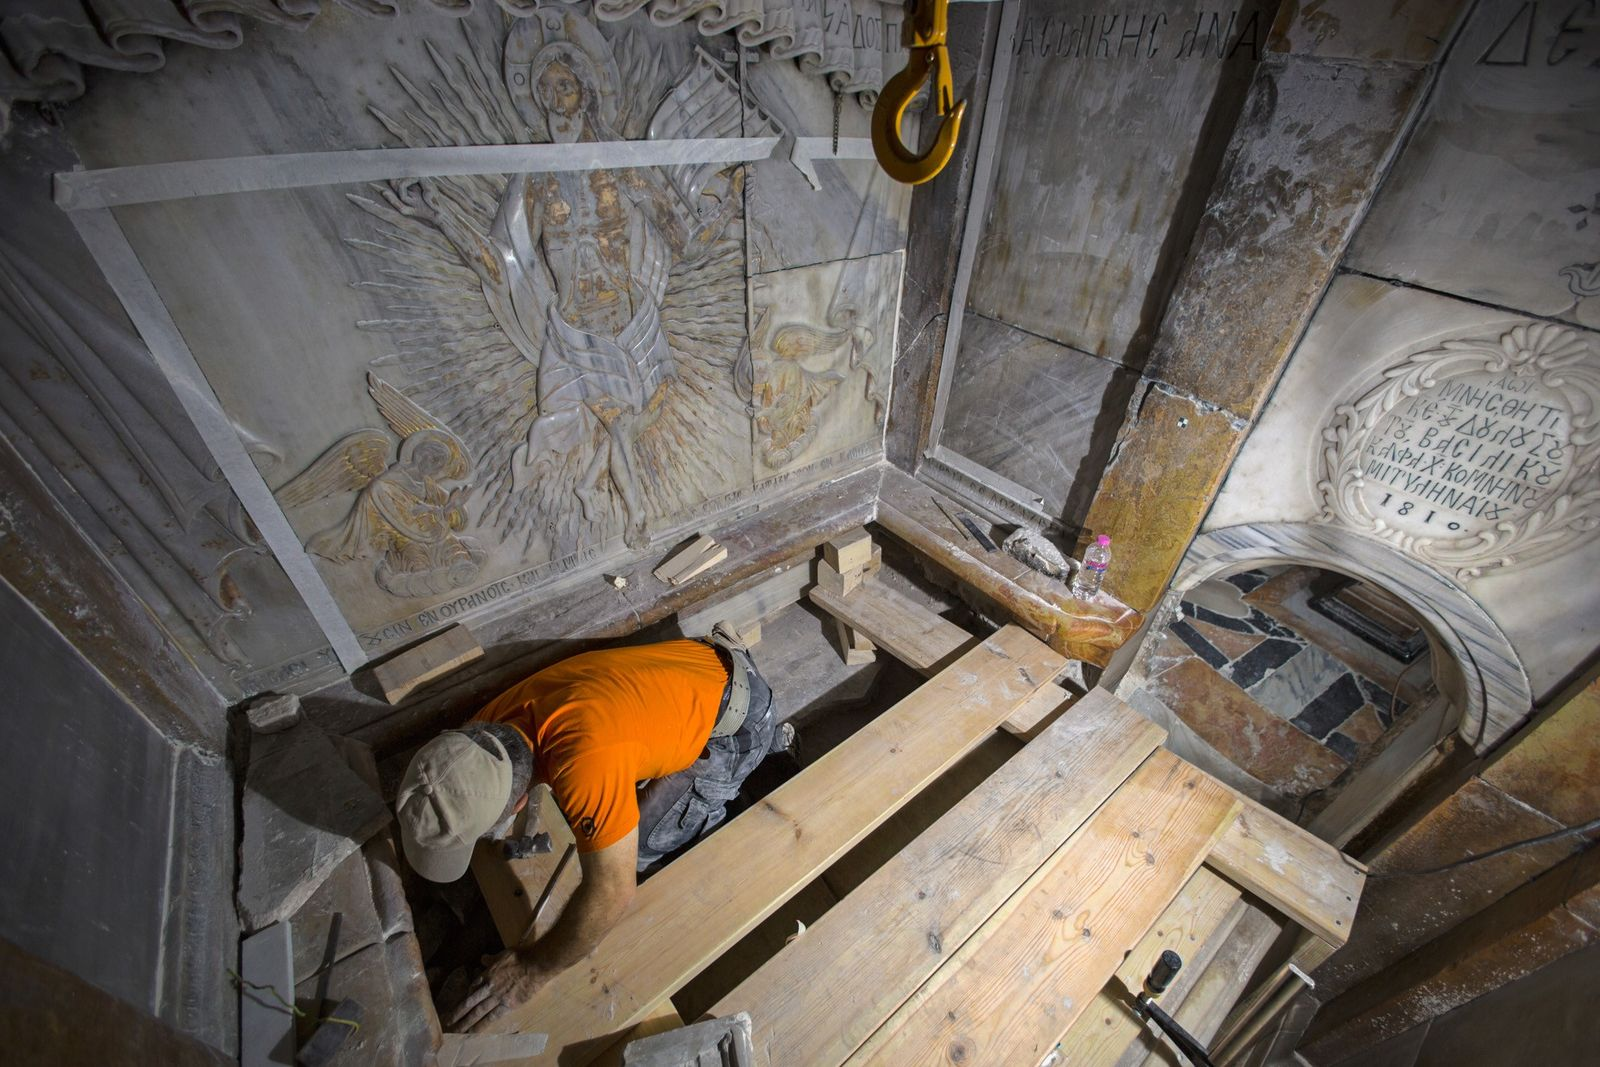 Exclusive: Age of Jesus Christ's Purported Tomb Revealed - 1